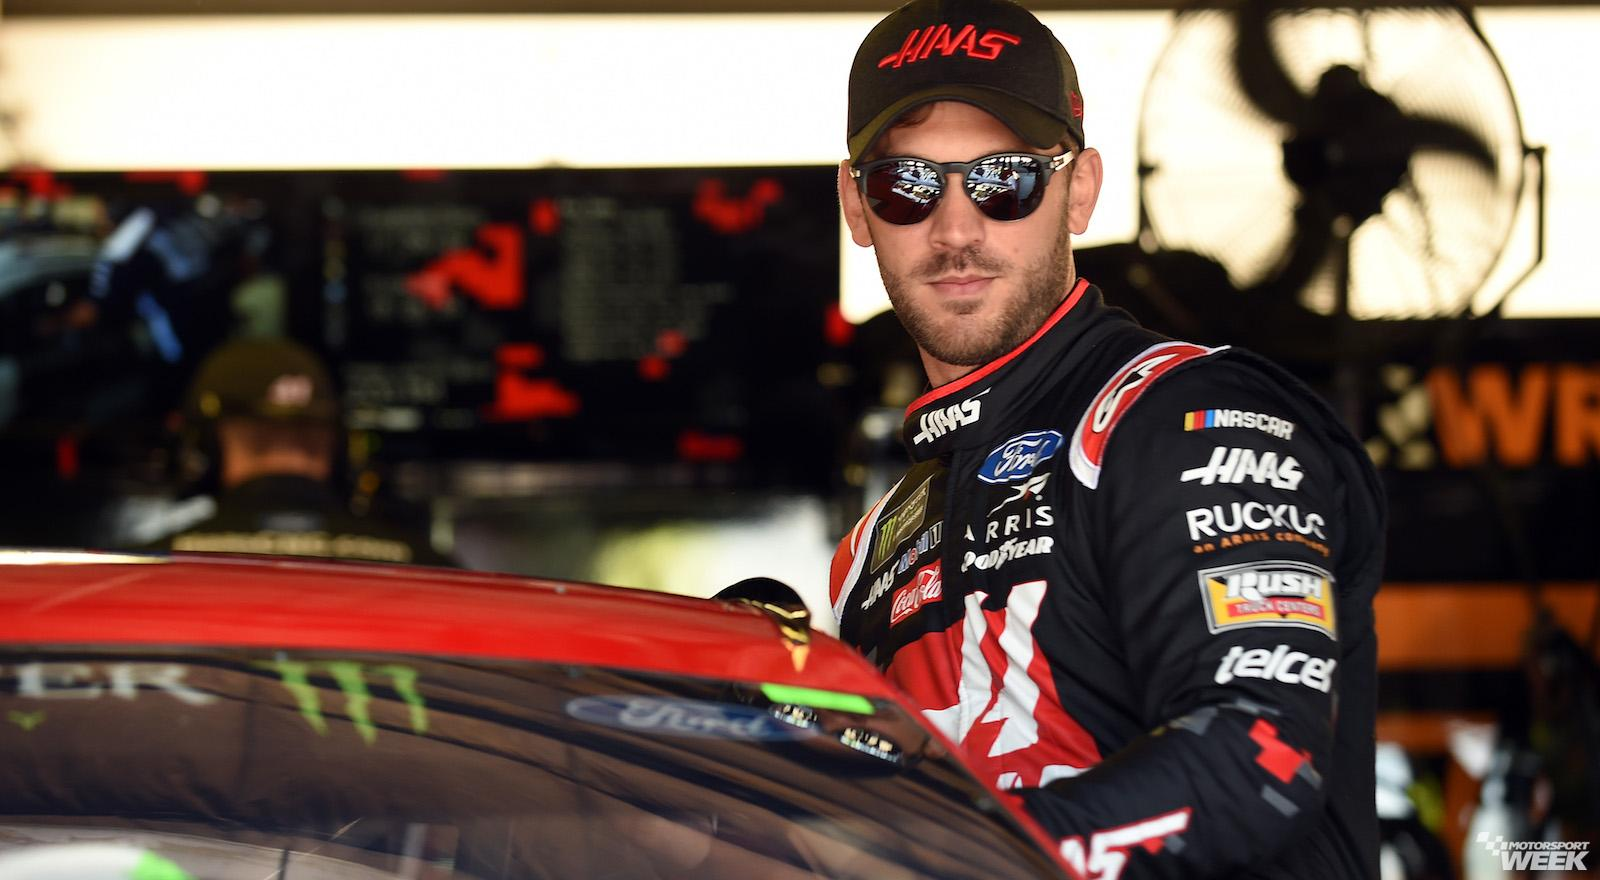 Nascar: Daniel Suarez expected to join Gaunt Brothers Racing, replacing Parker Kligerman – Motorsport Week